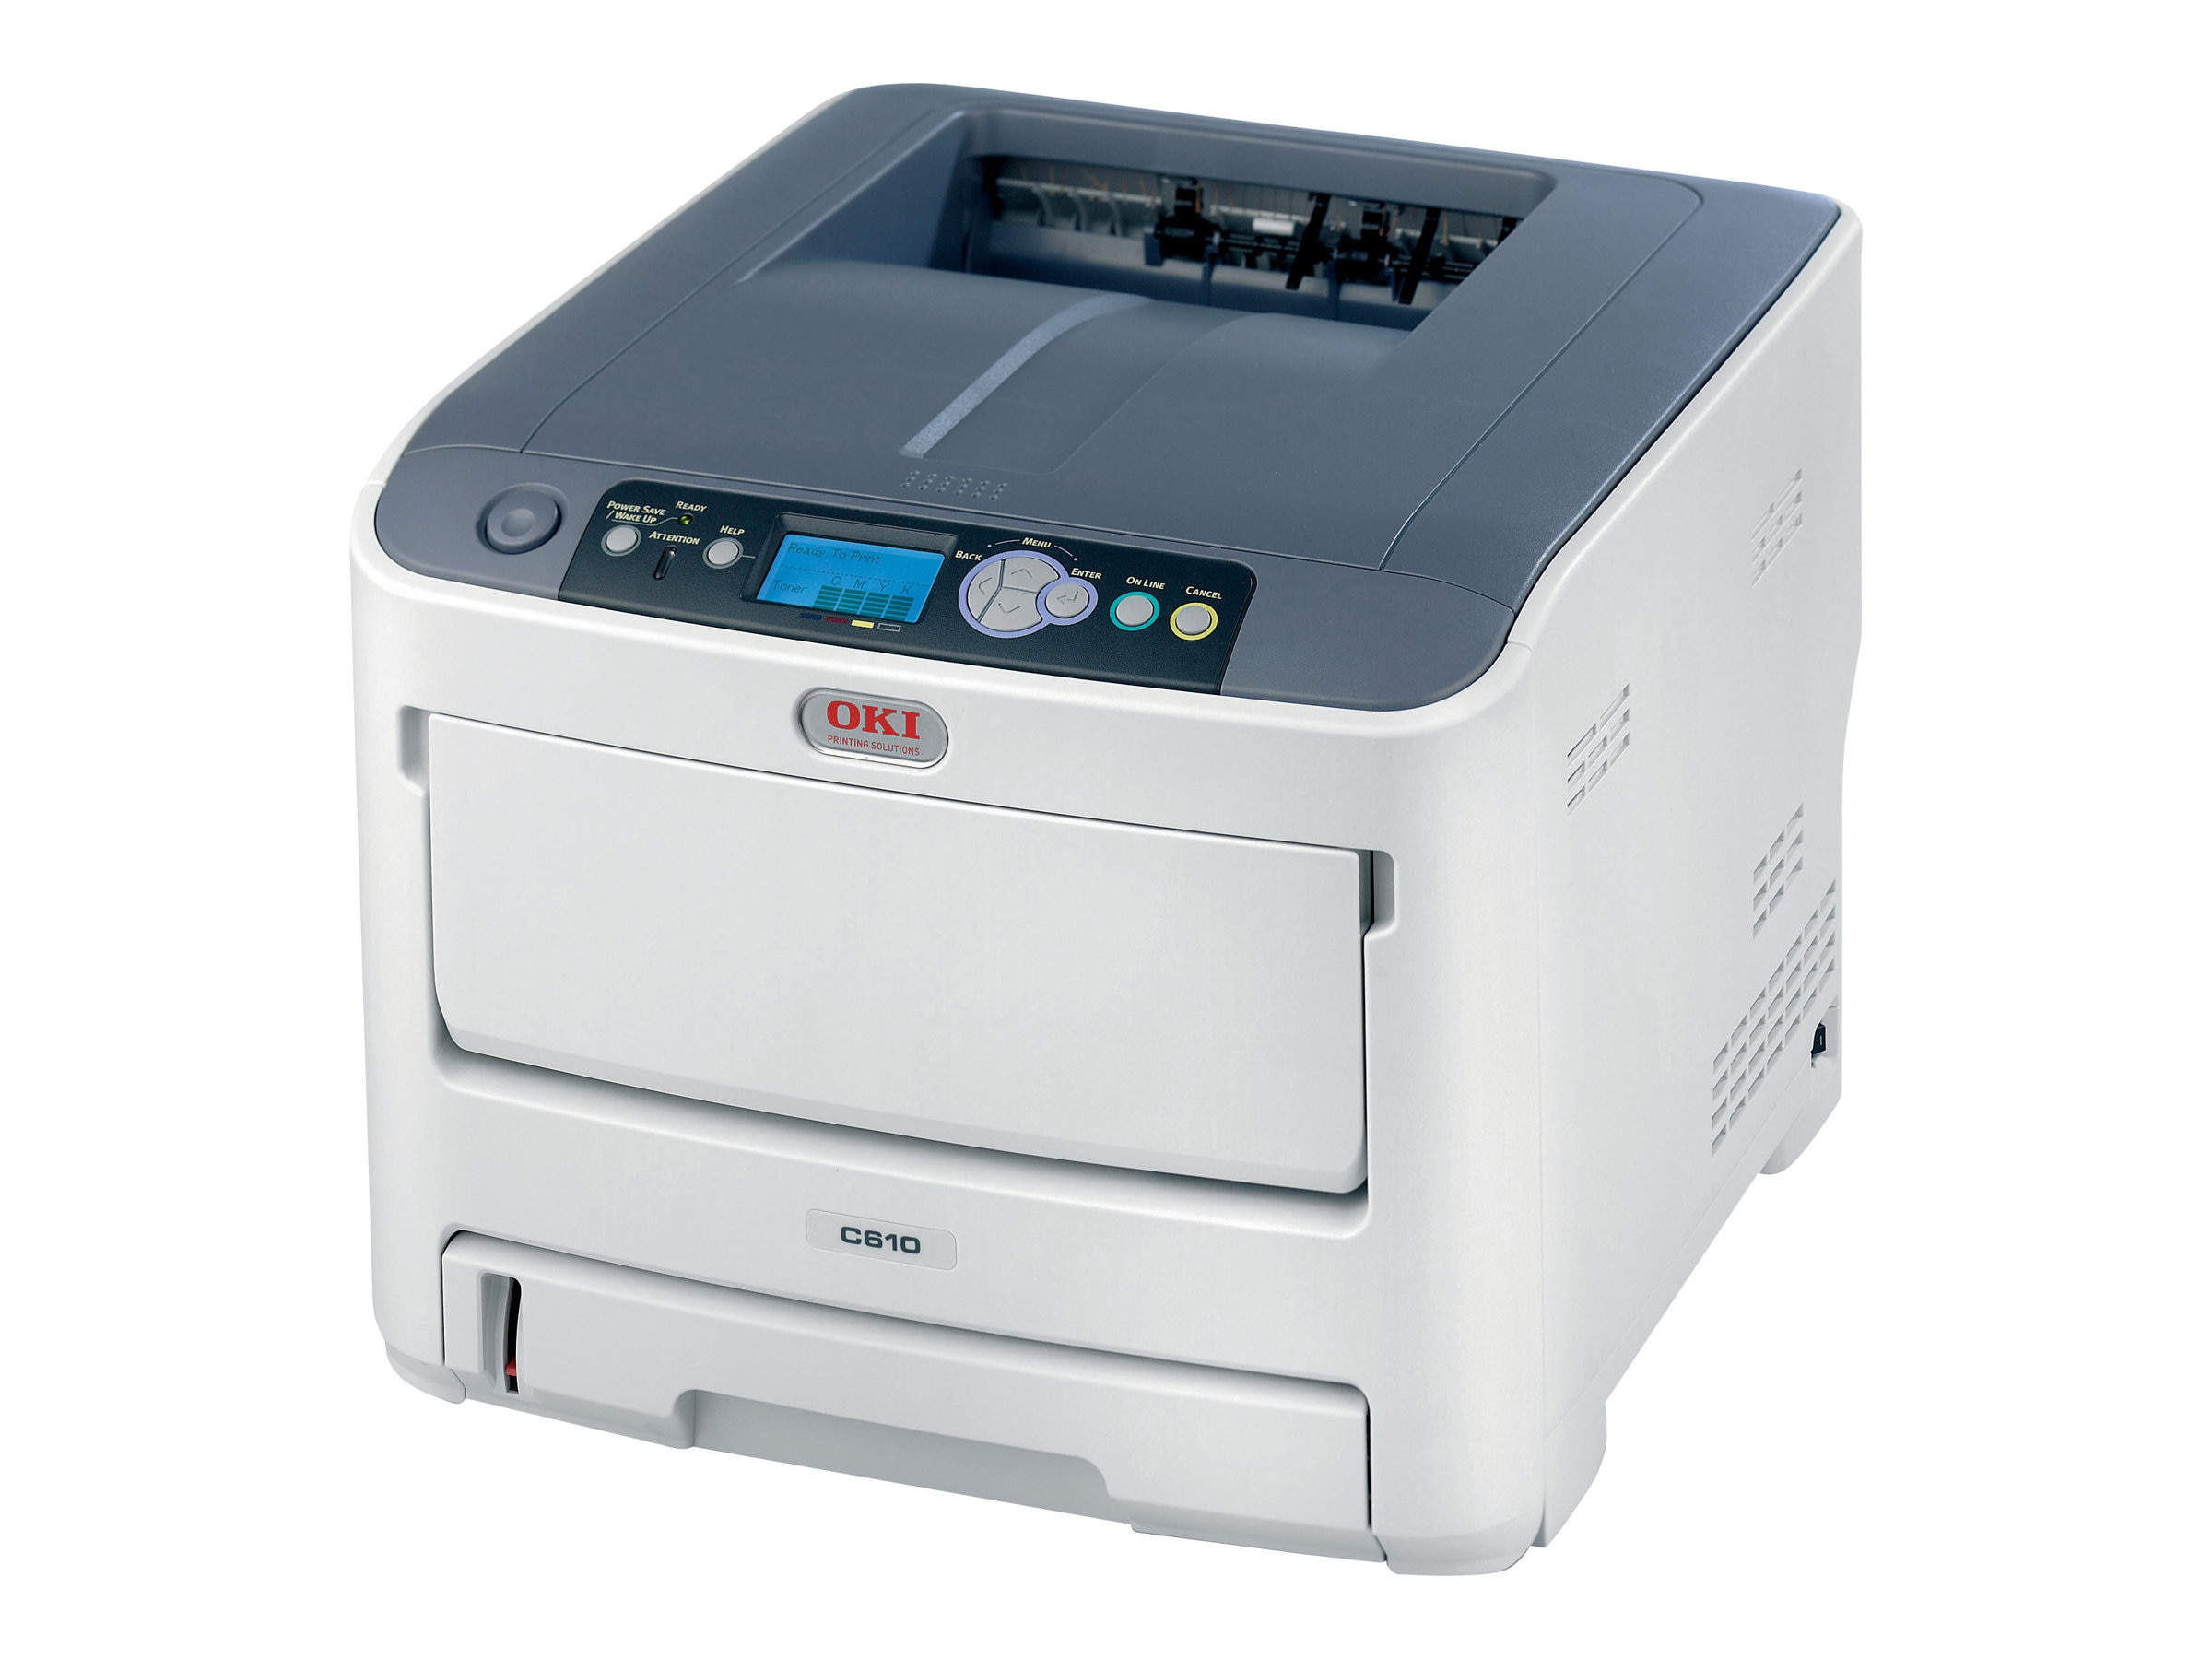 Oki C610n Digital Color Printer (Multilingual)